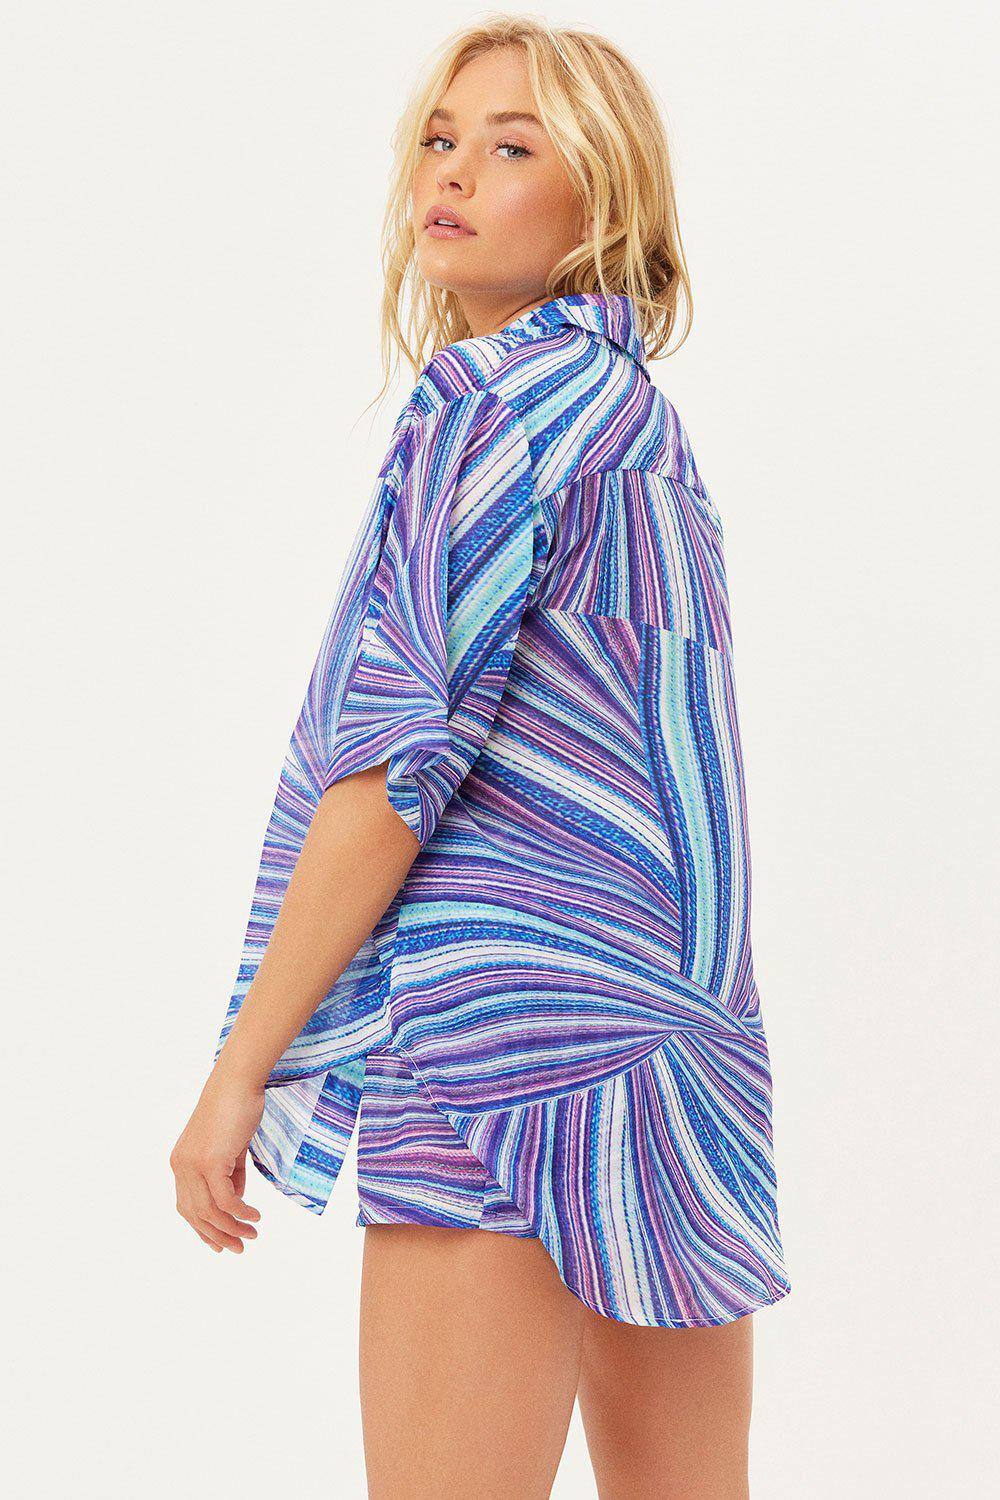 Fifi Sustainable Button Up Shirt - Shimmy Blue 3